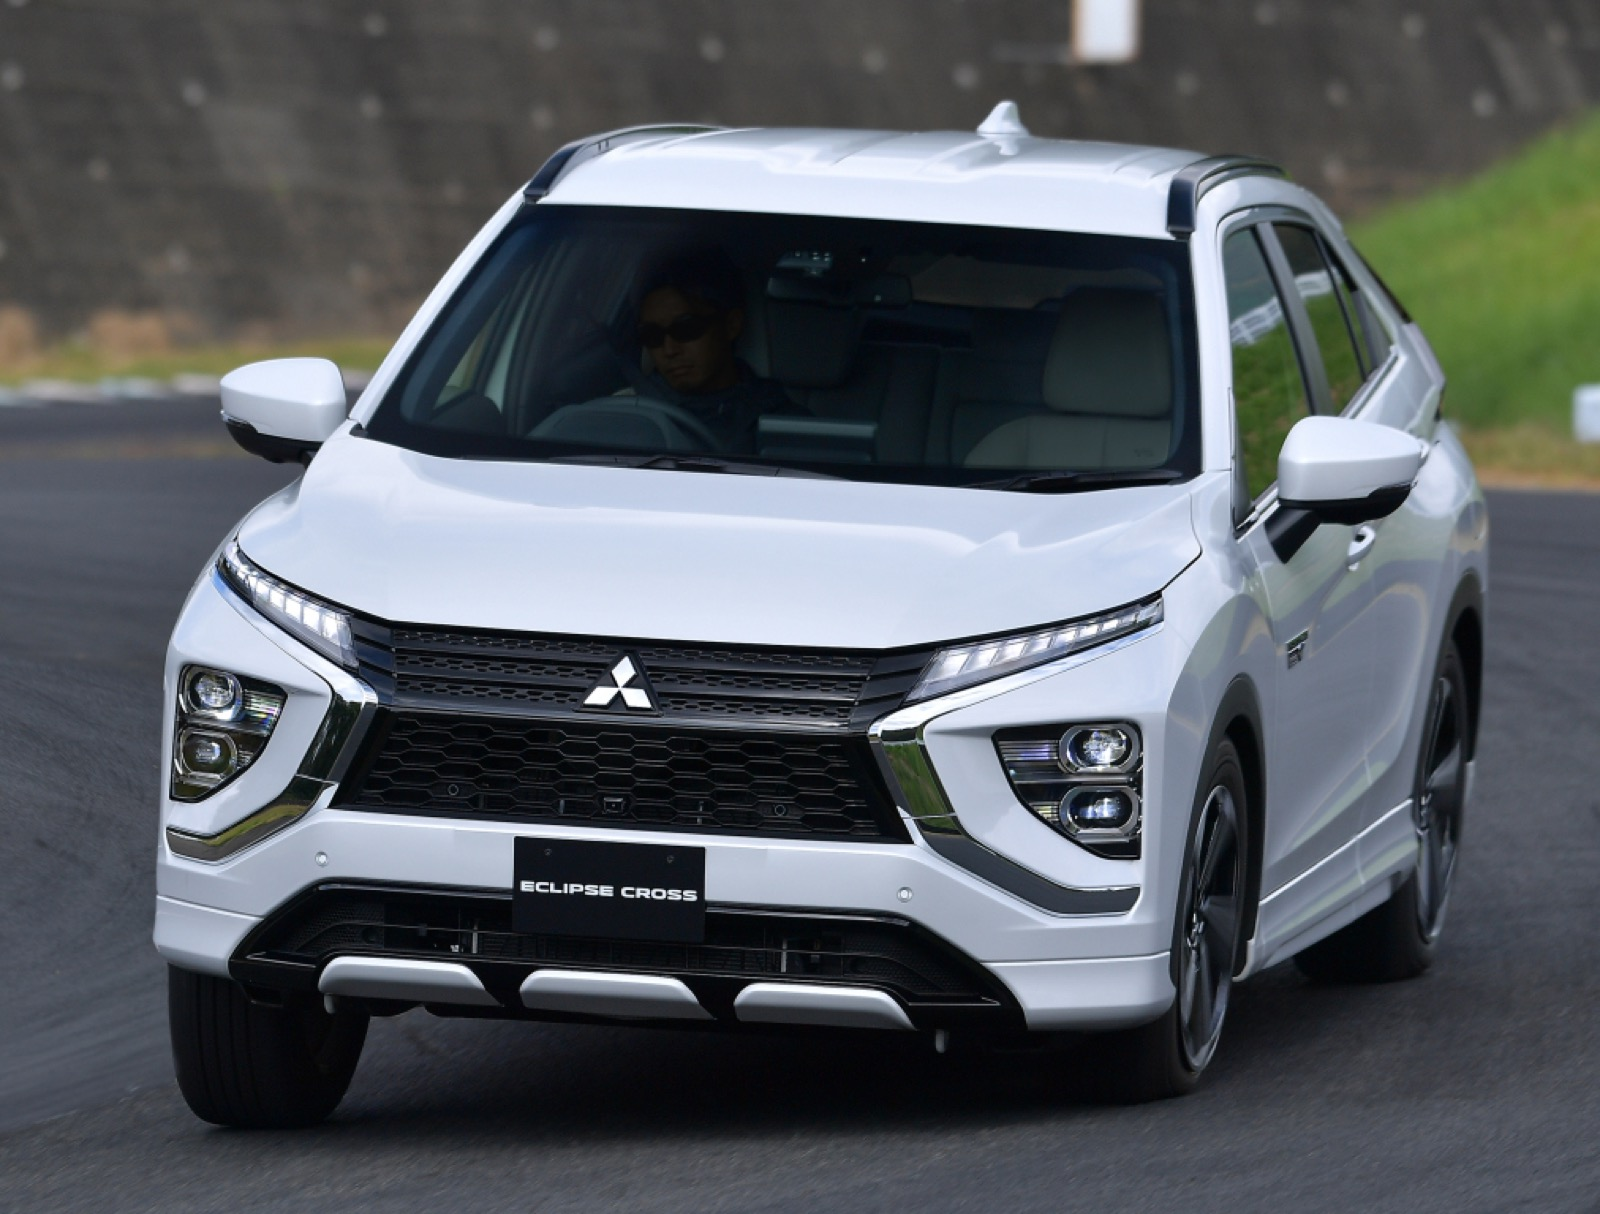 msubishi-eclipse-cross-phev-2020-13